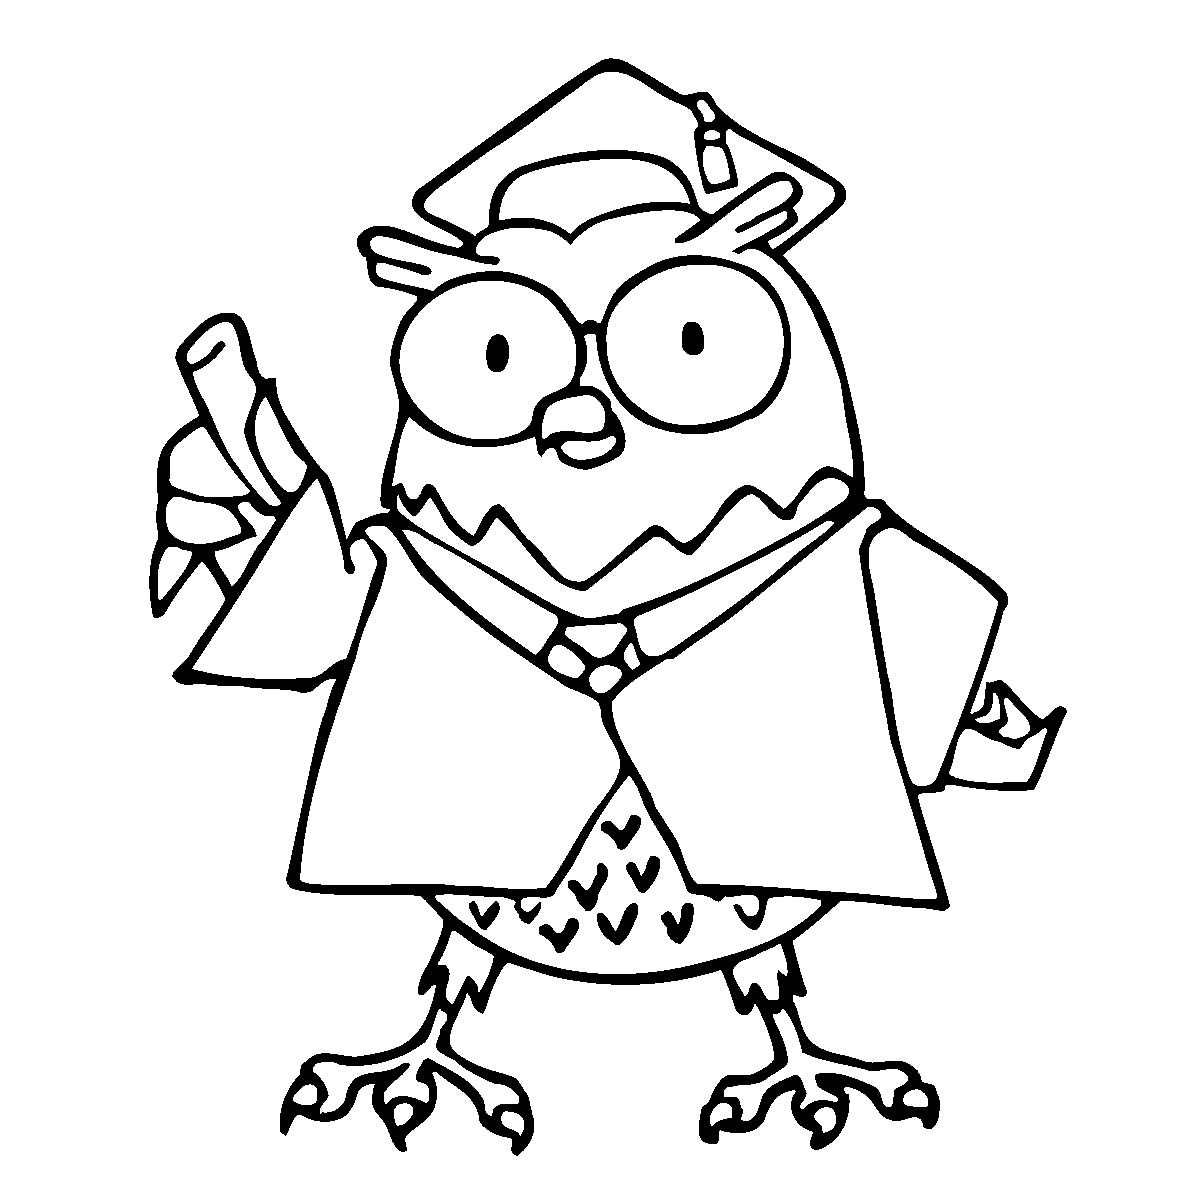 Cartoon Owl Coloring Pages.